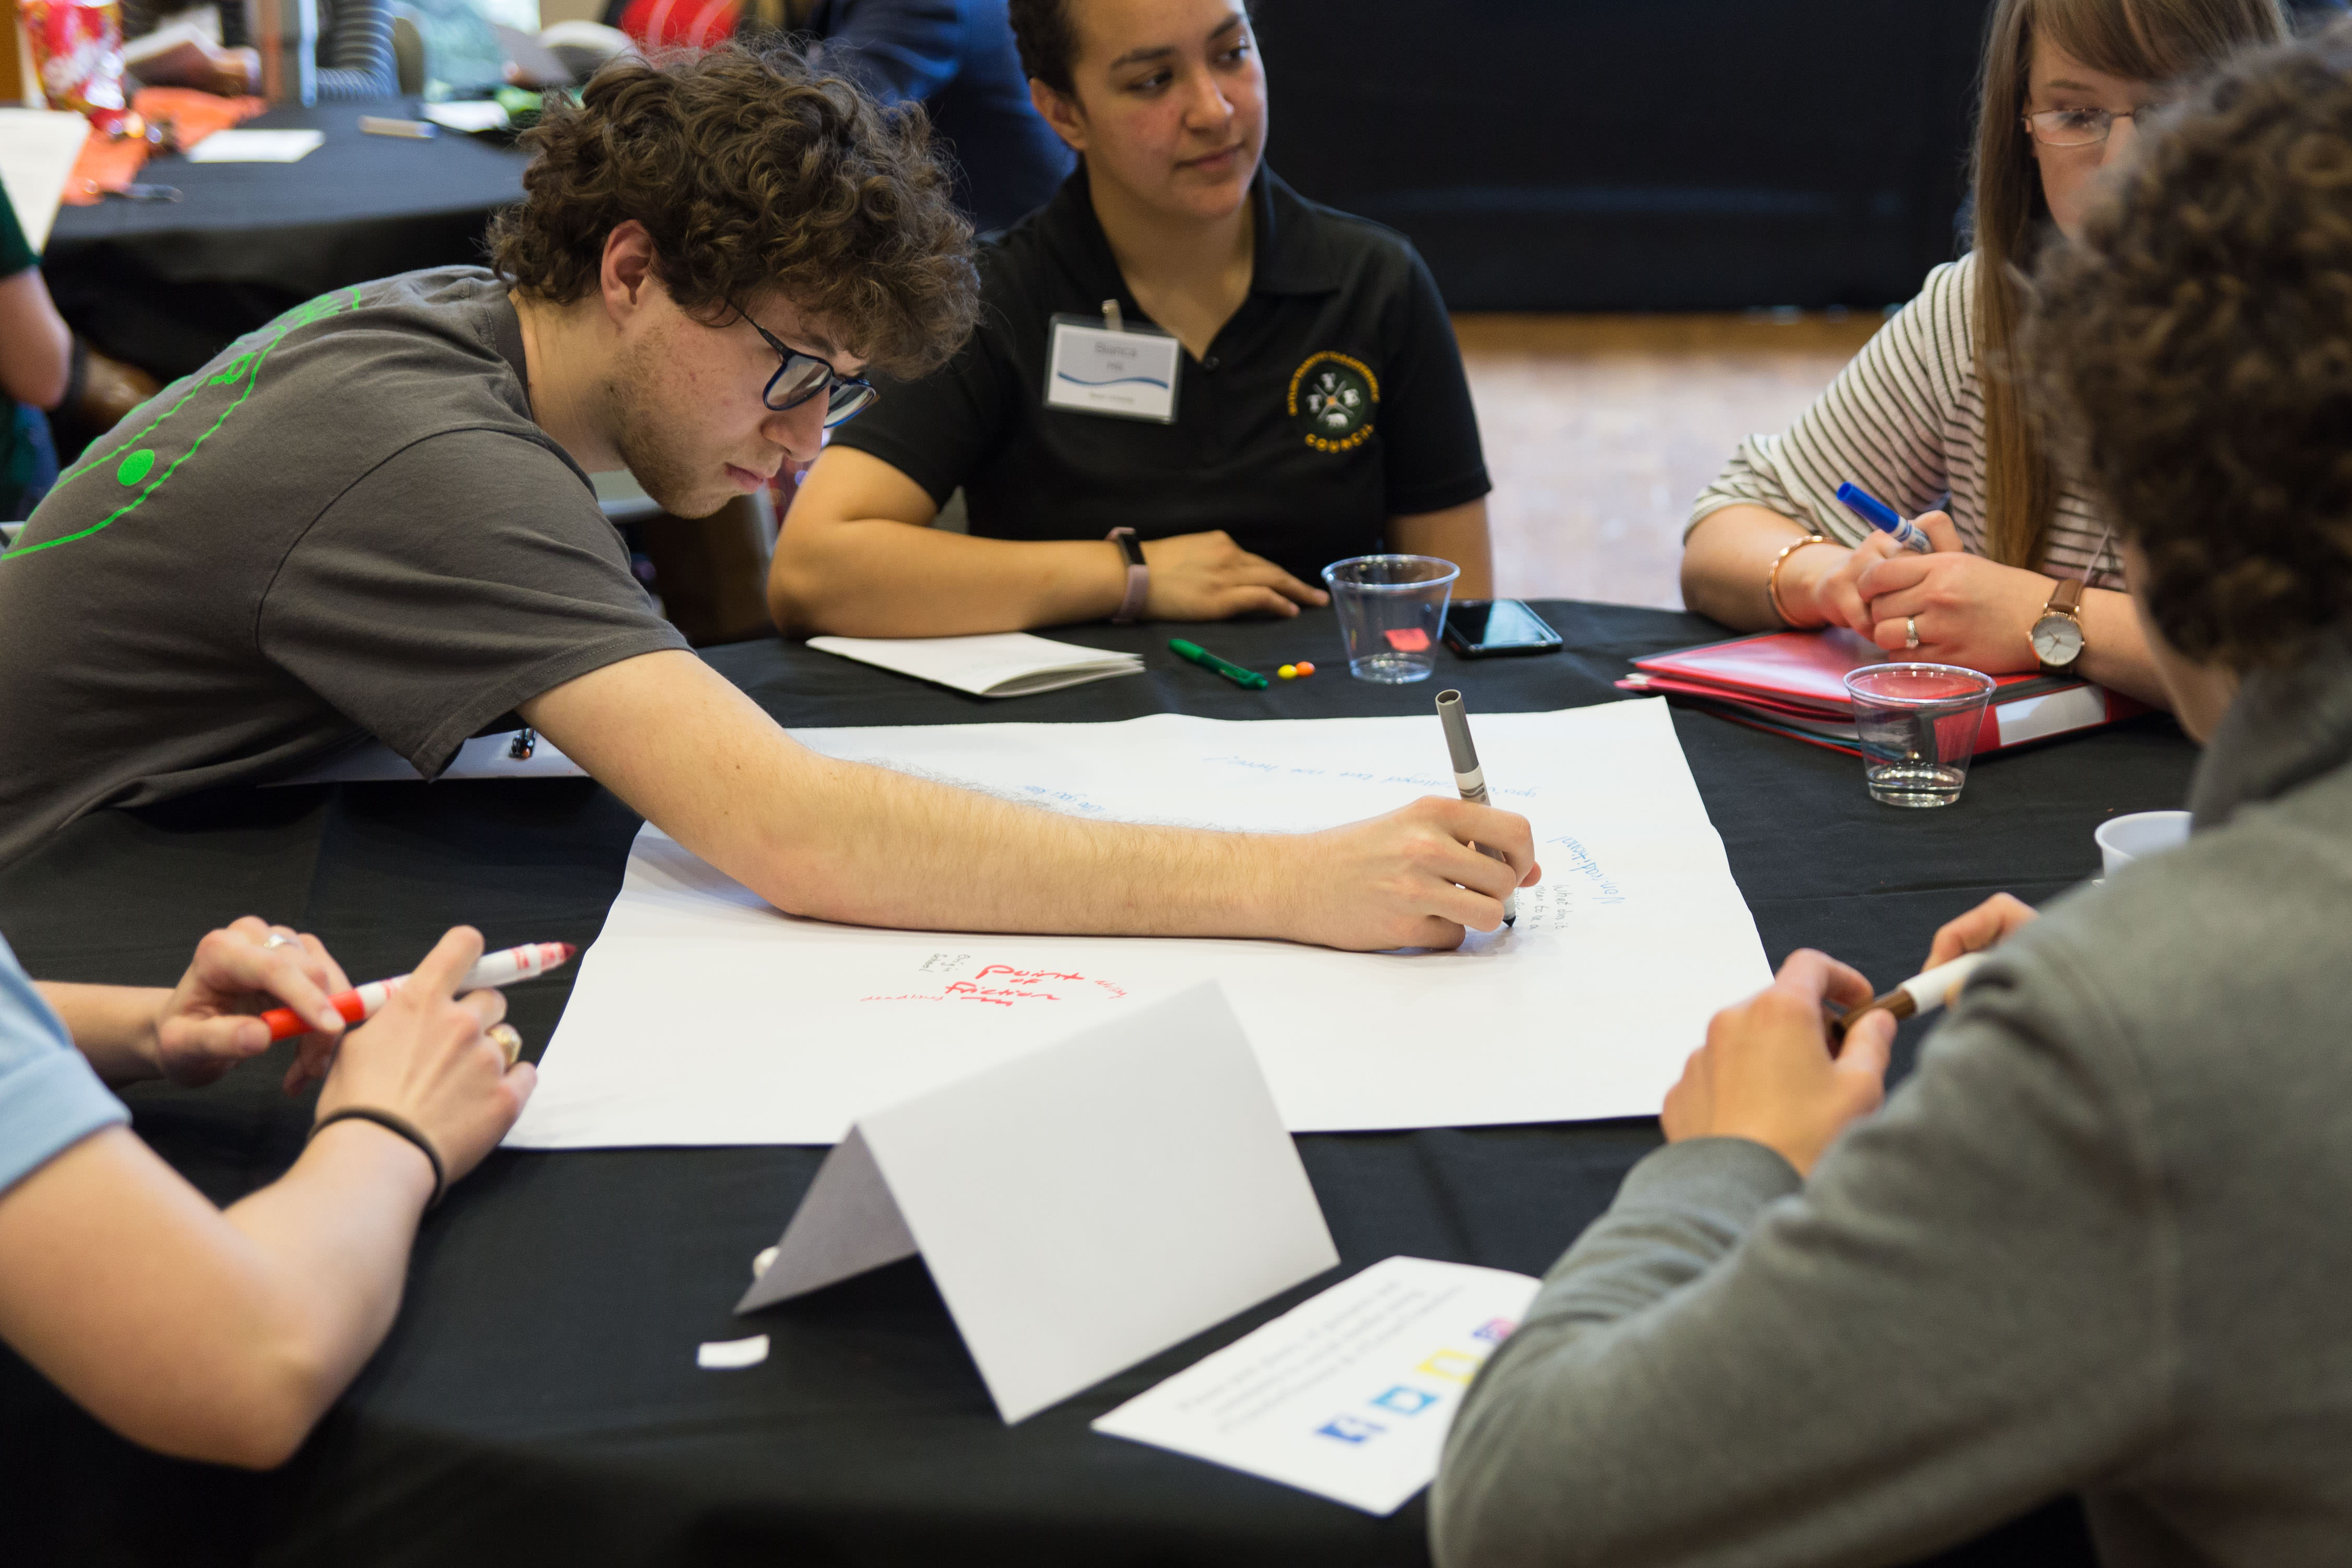 Transfer Summit attendees participate in an activity